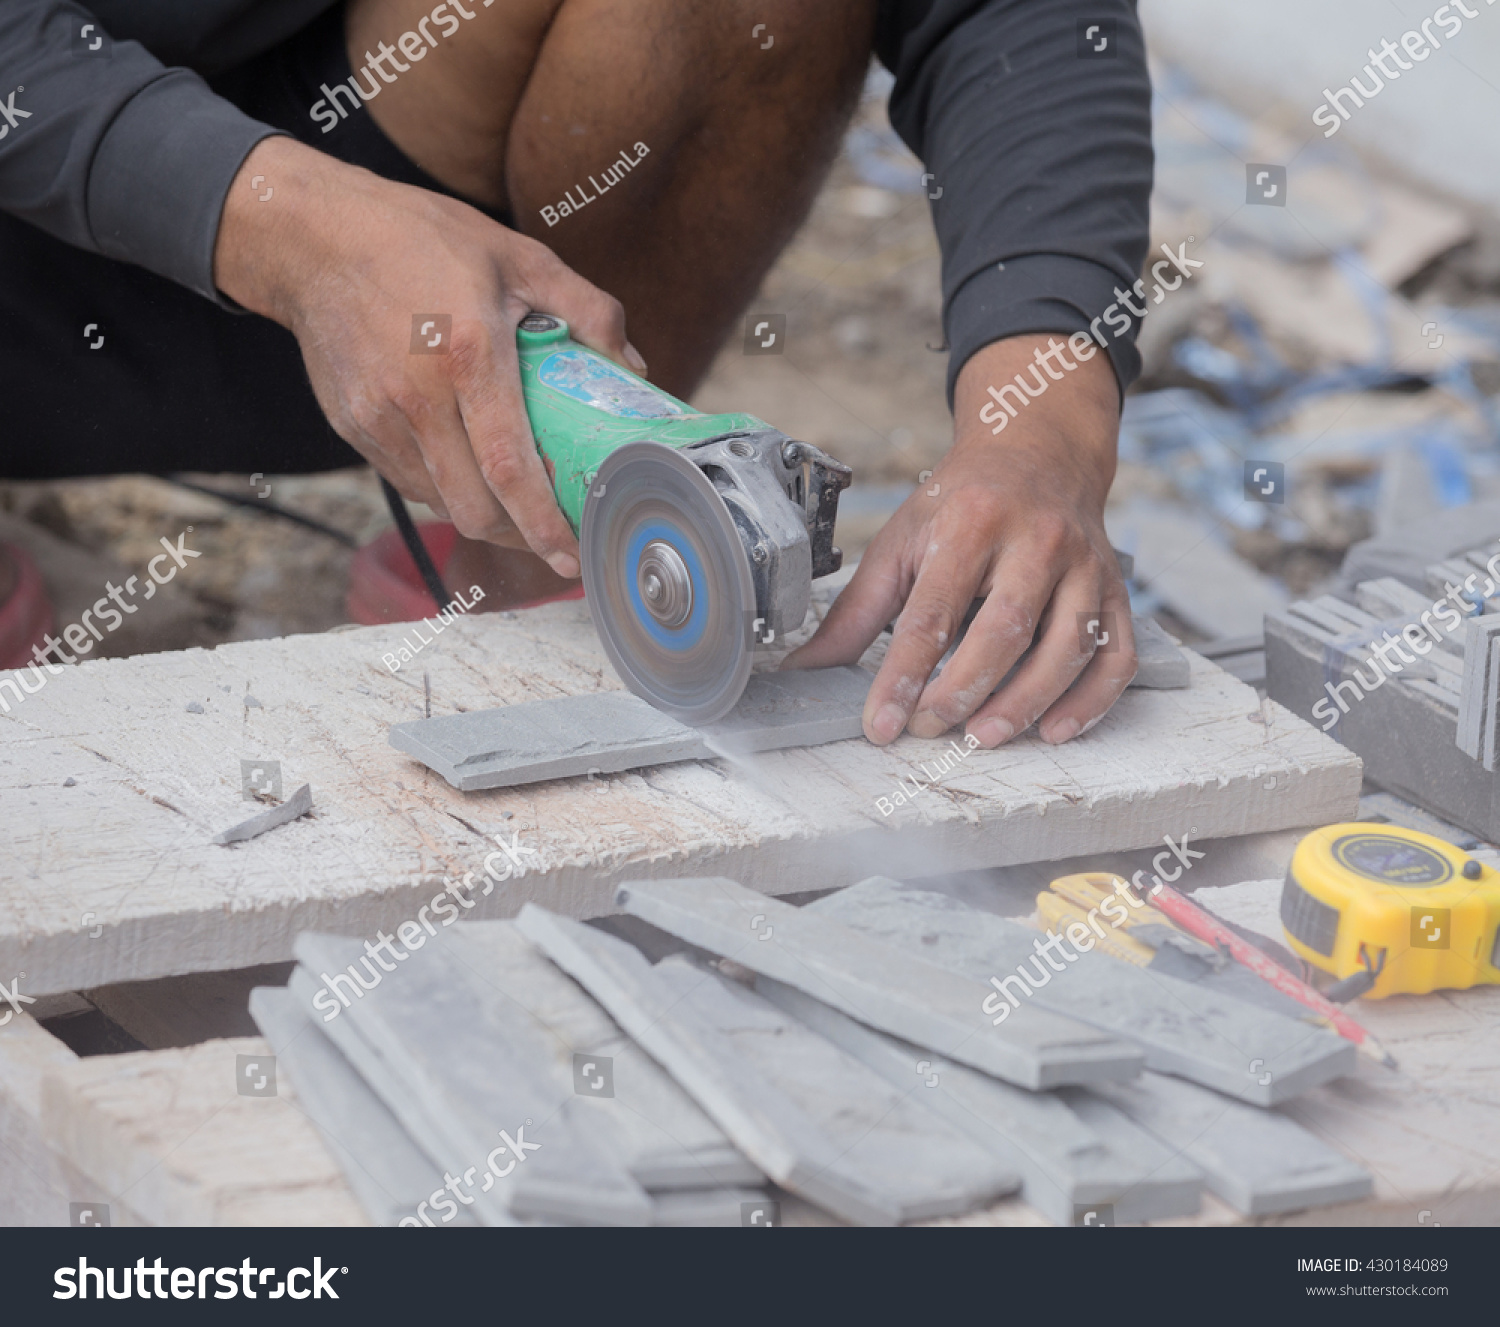 Worker cutting sand stone tile using stock photo 430184089 worker cutting a sand stone tile using an angle grinder at construction site dailygadgetfo Image collections